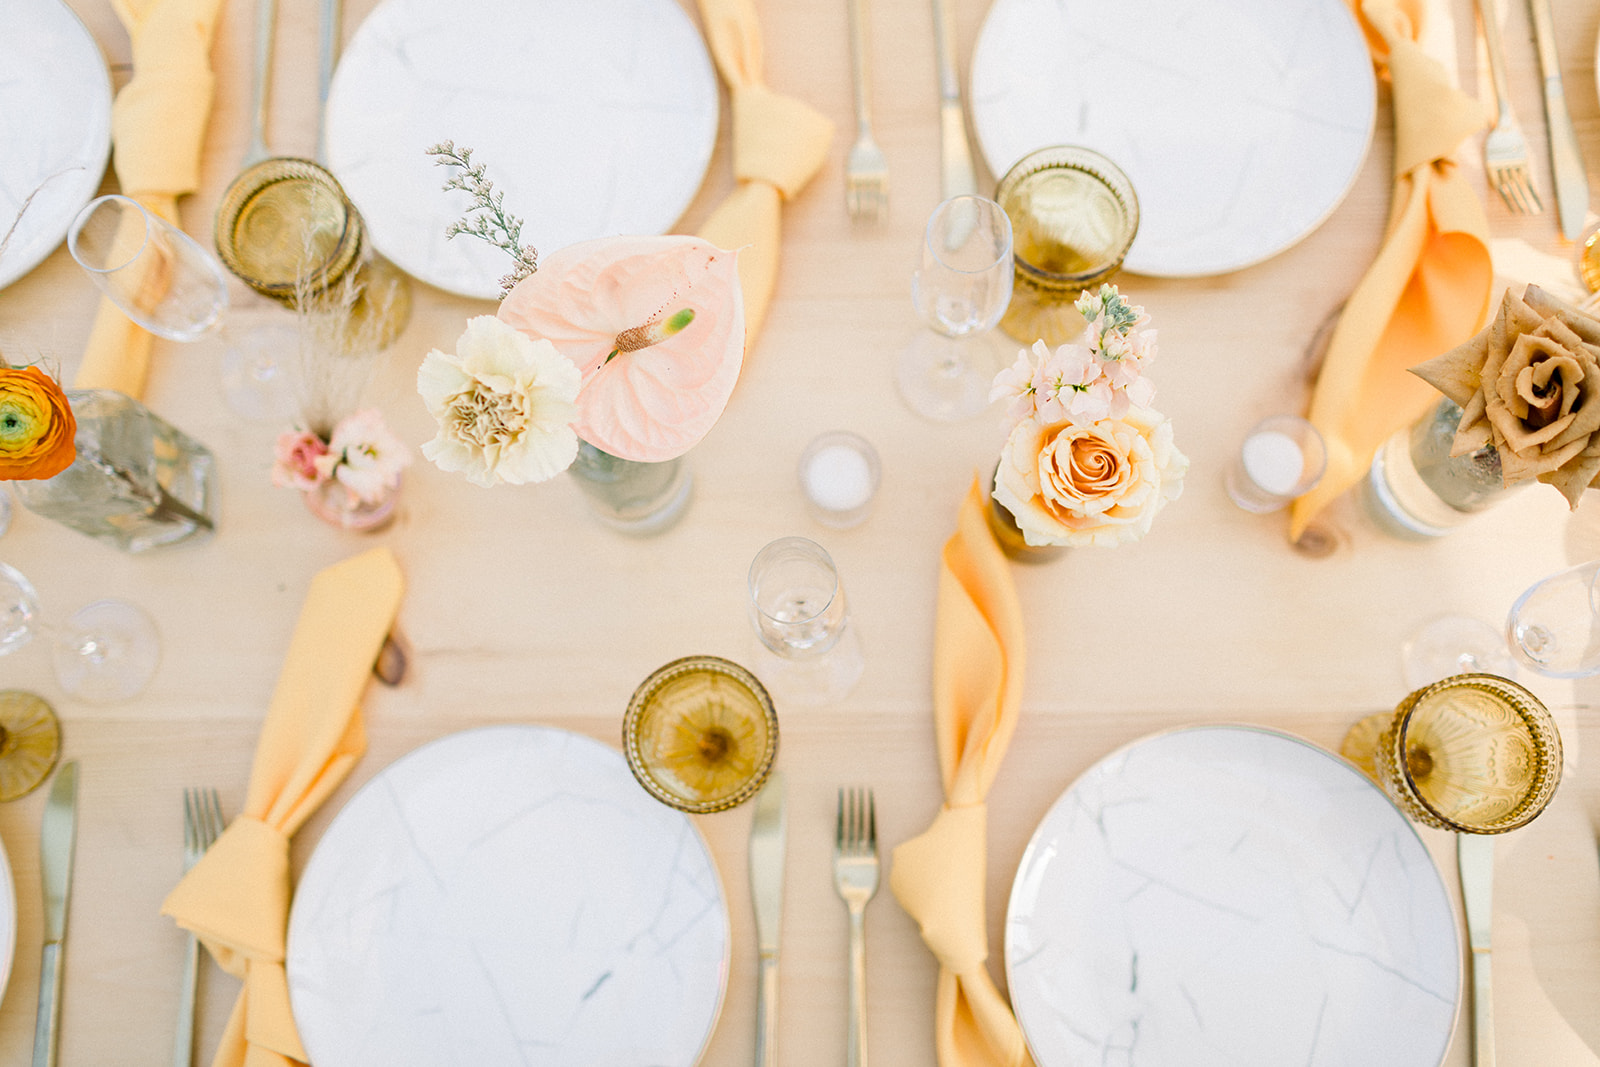 Marble plates and orange napkins at colorful Palm Springs Wedding by Lucky Day Events Co. x Our Story Creative